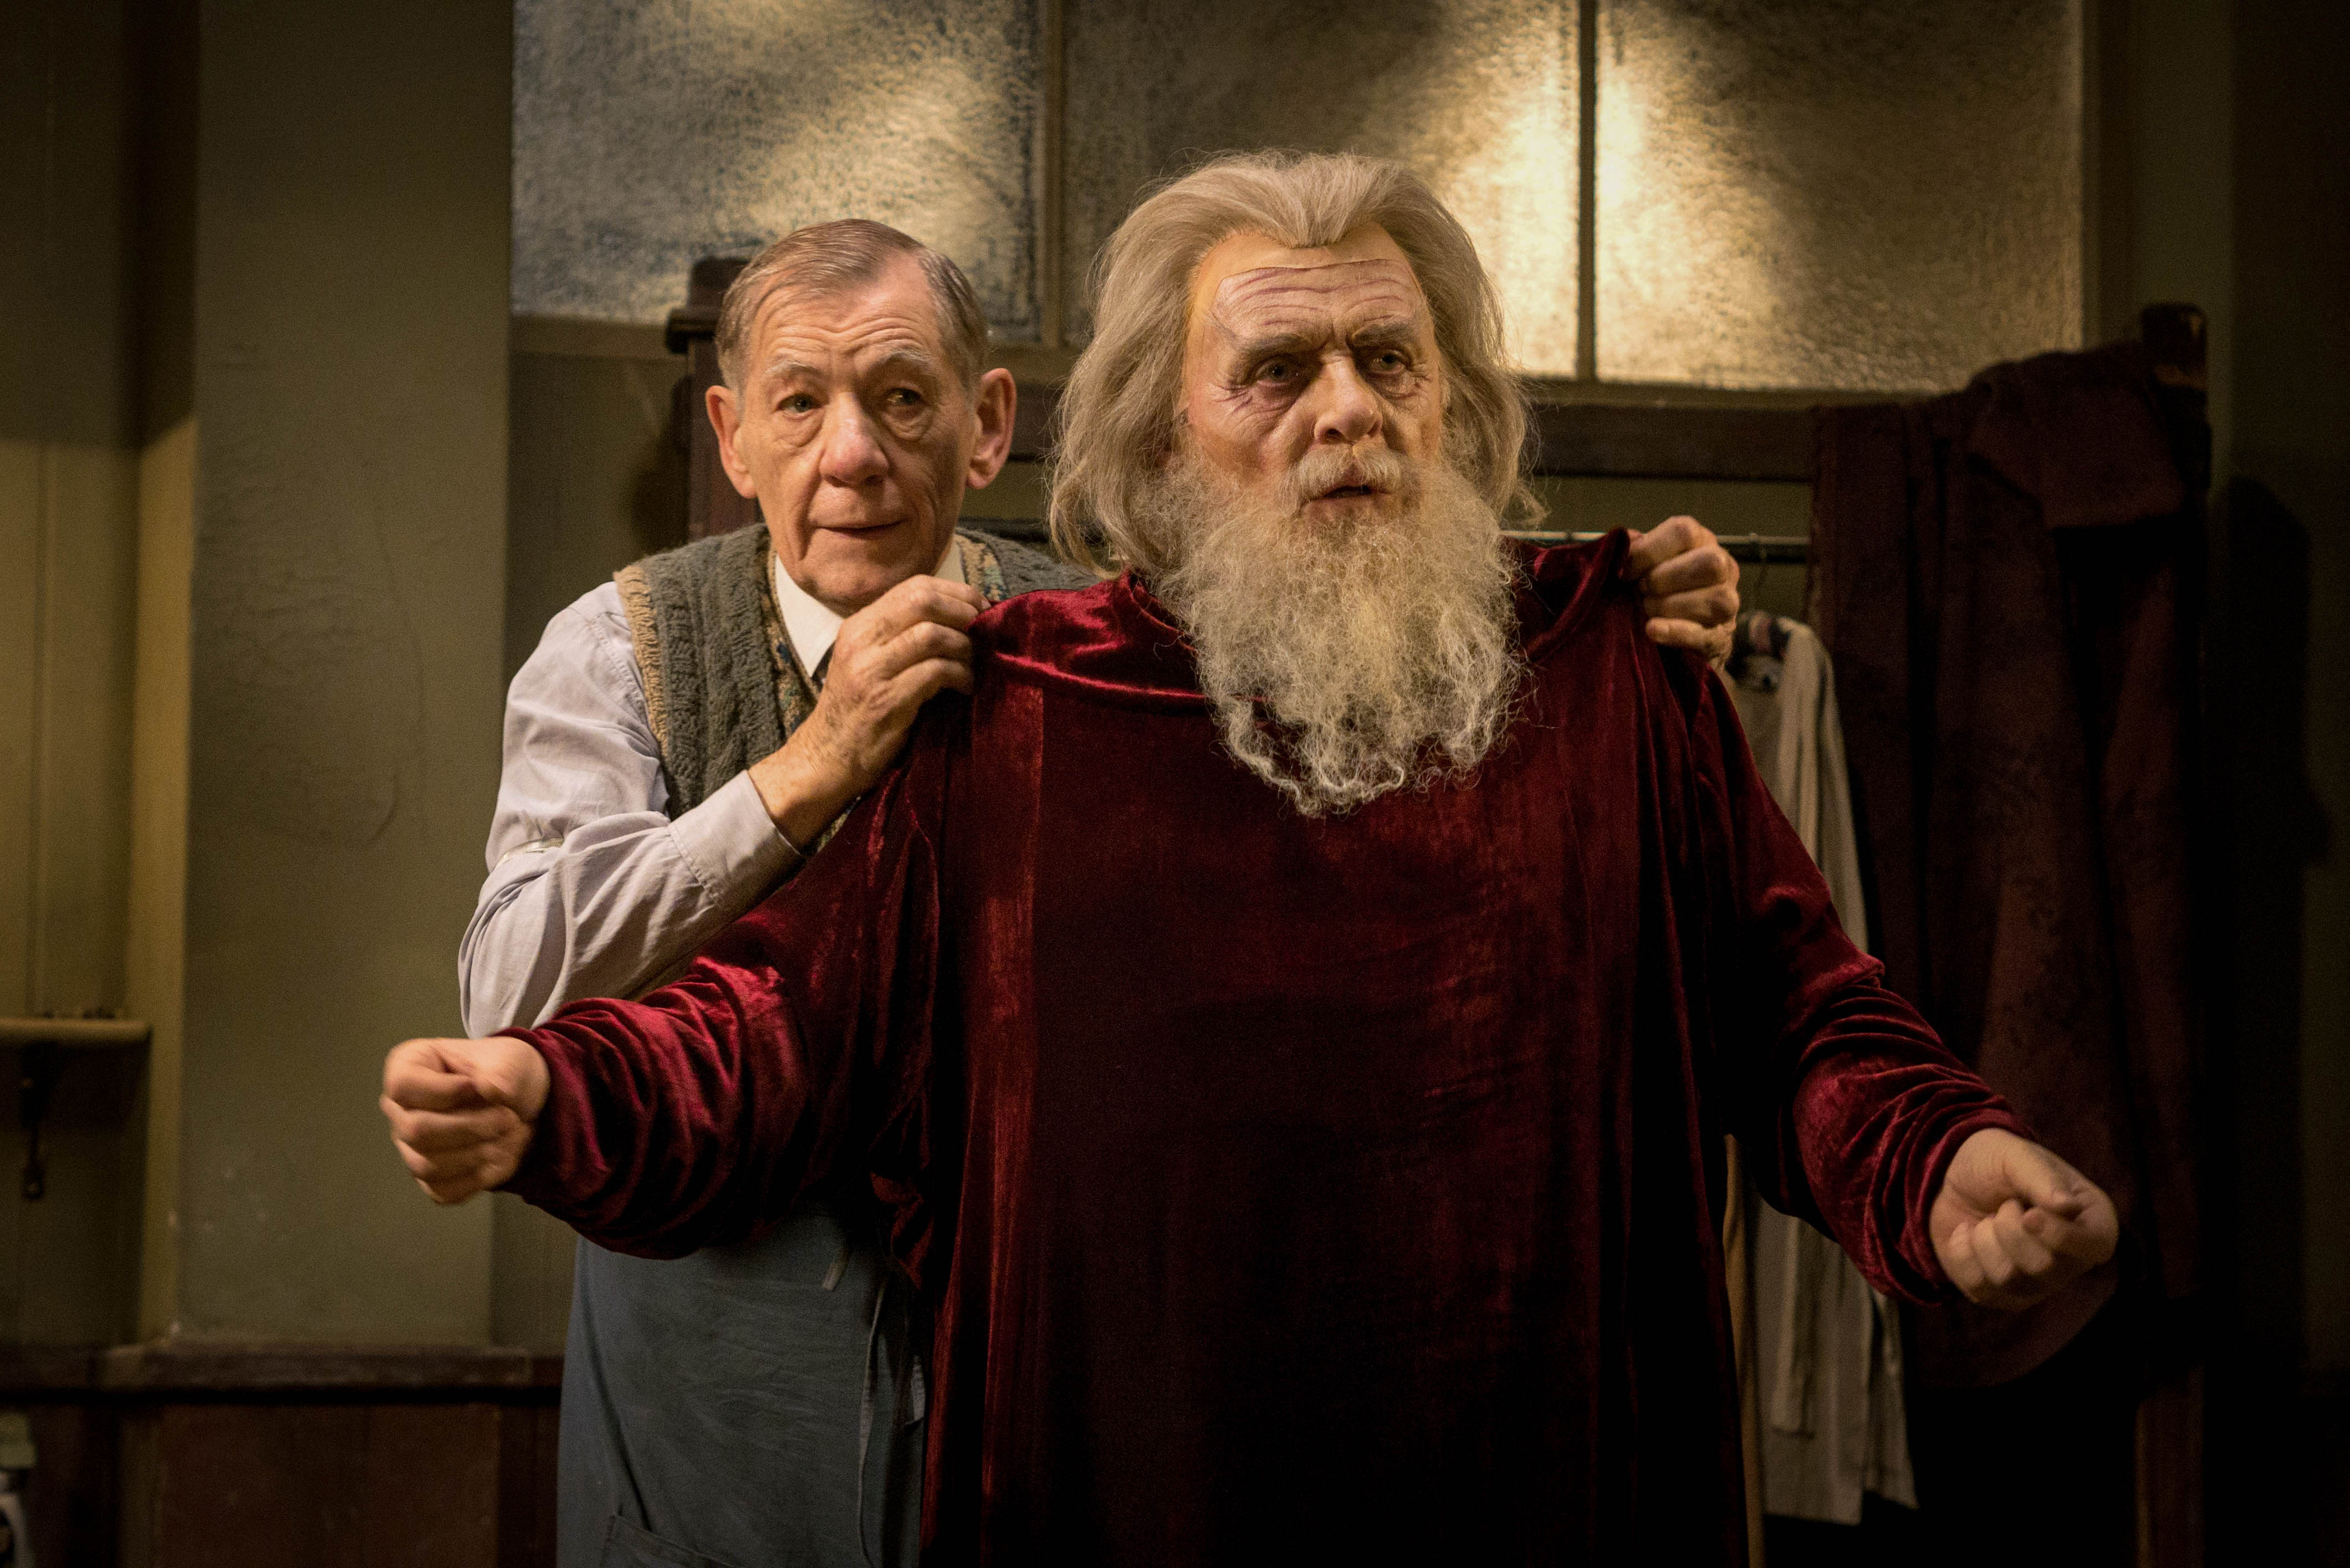 WARNING: Embargoed for publication until 00:00:01 on 27/10/2015 - Programme Name: The Dresser - TX: n/a - Episode: n/a (No. n/a) - Picture Shows: +++PUBLICATION OF THIS IMAGE IS STRICTLY EMBARGOED UNTIL 00.01 HOURS TUESDAY OCTOBER 27TH 2015+++ Norman (IAN MCKELLEN), Sir (ANTHONY HOPKINS) - (C) Playground Entertainment - Photographer: Joss Barratt